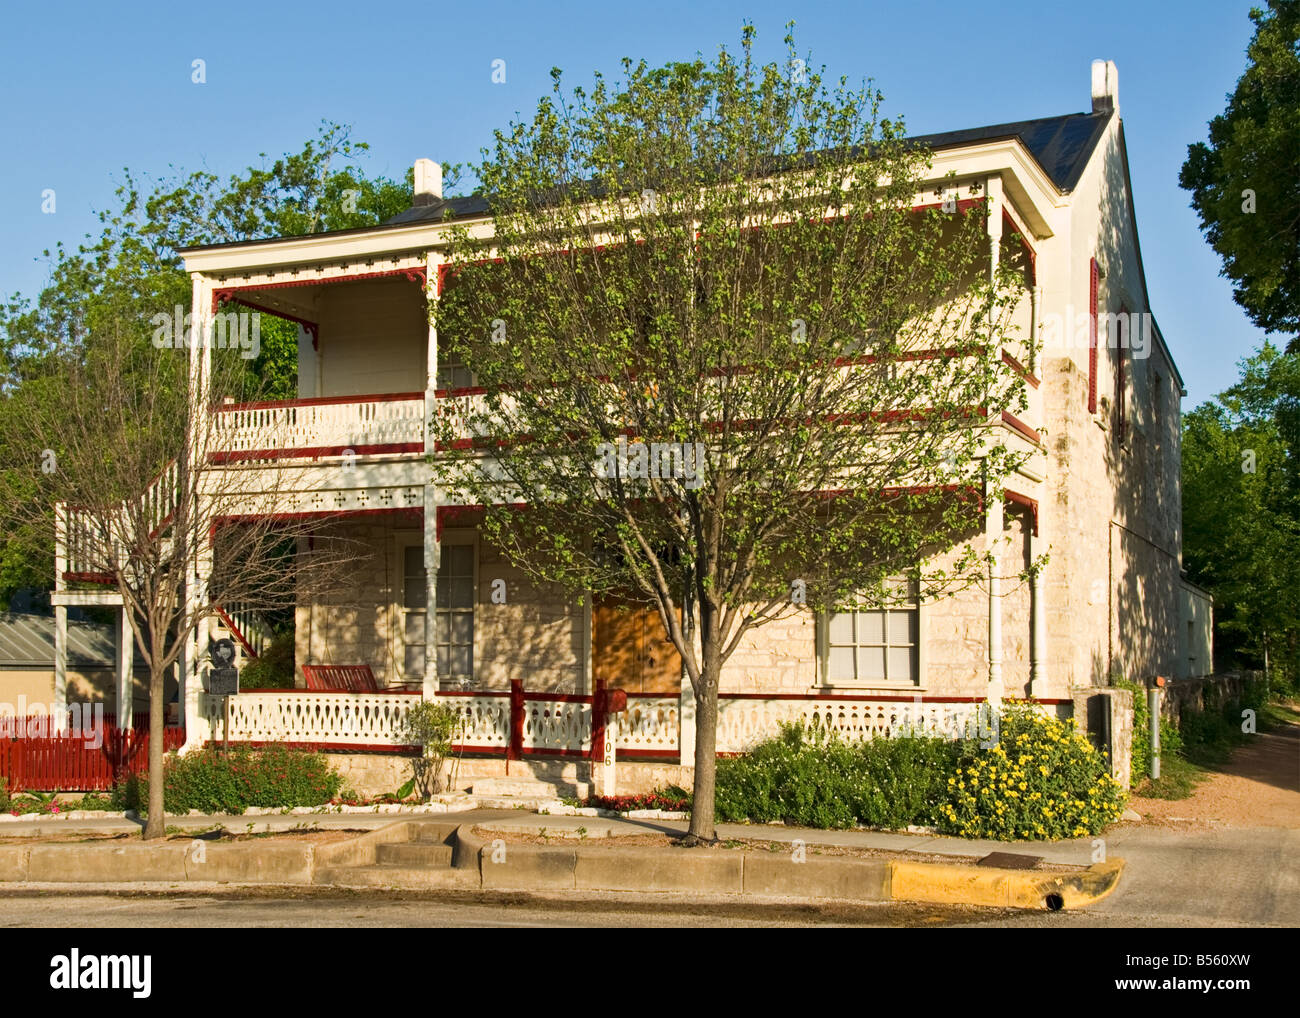 Texas Hill Country Fredericksburg historic Schmidt Gold House built 1860 s - Stock Image